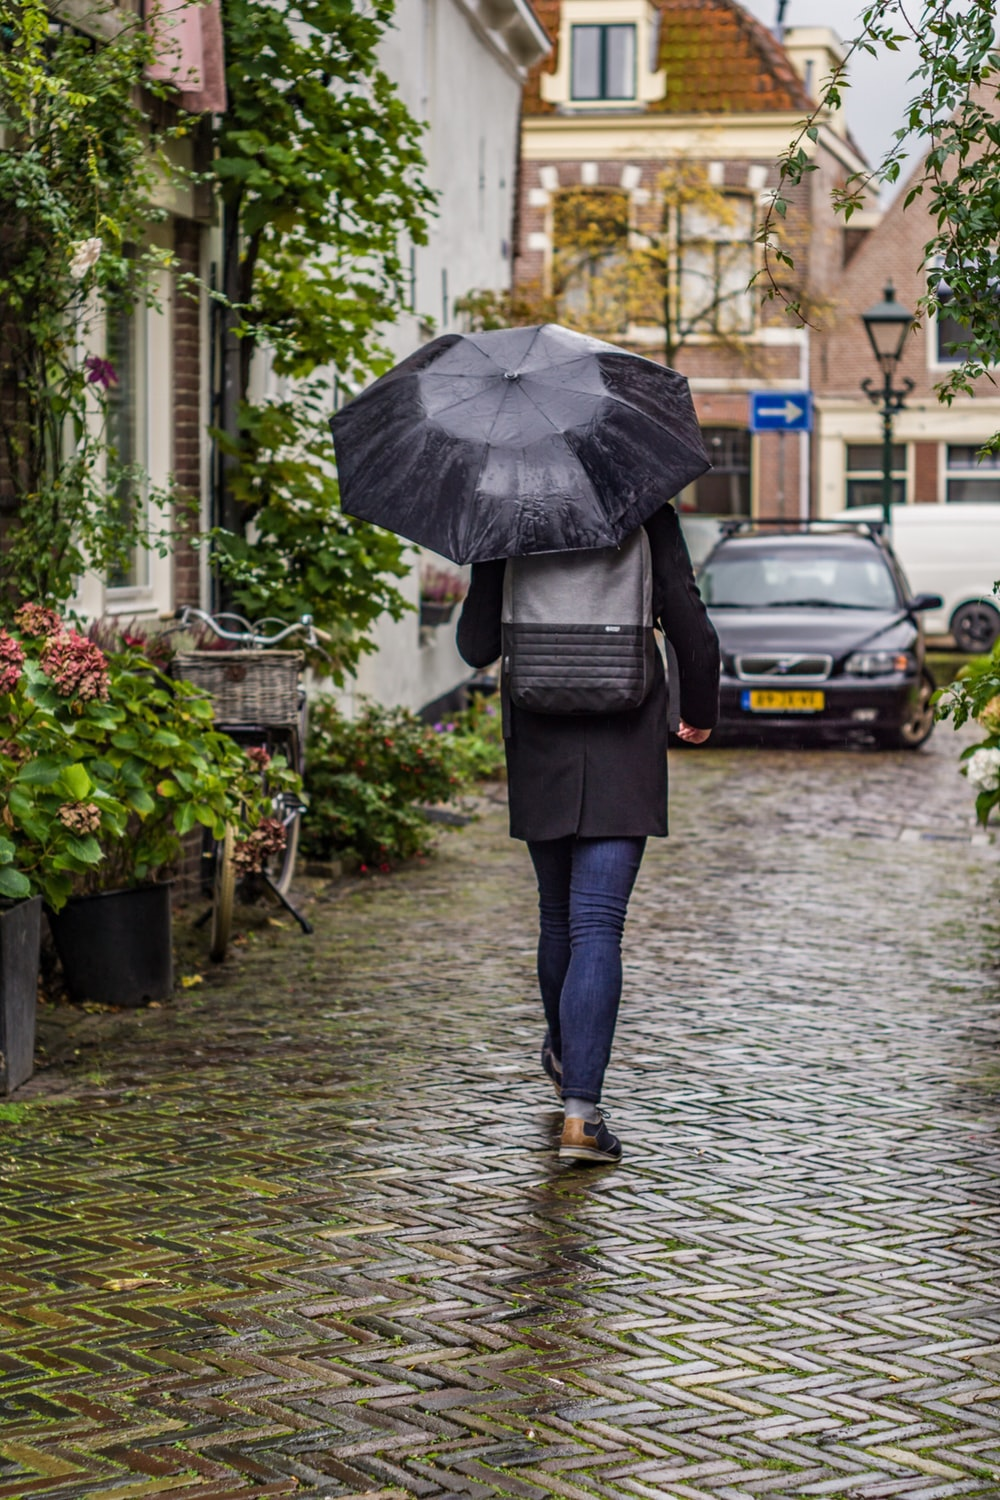 person walking on road while holding umbrella